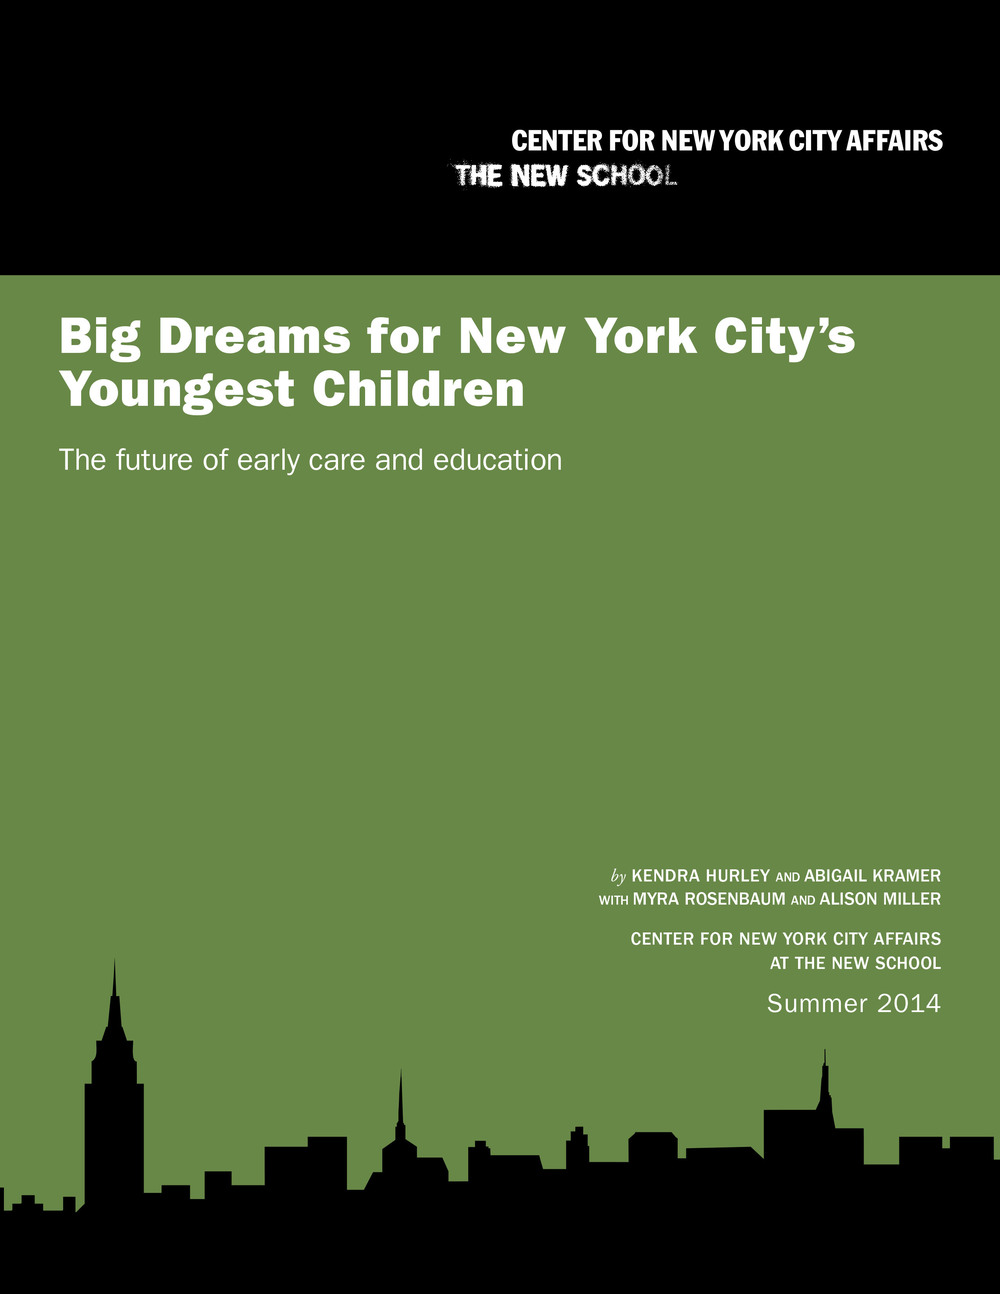 Big Dreams for NY's Youngest Children_ExecSumRec.jpg